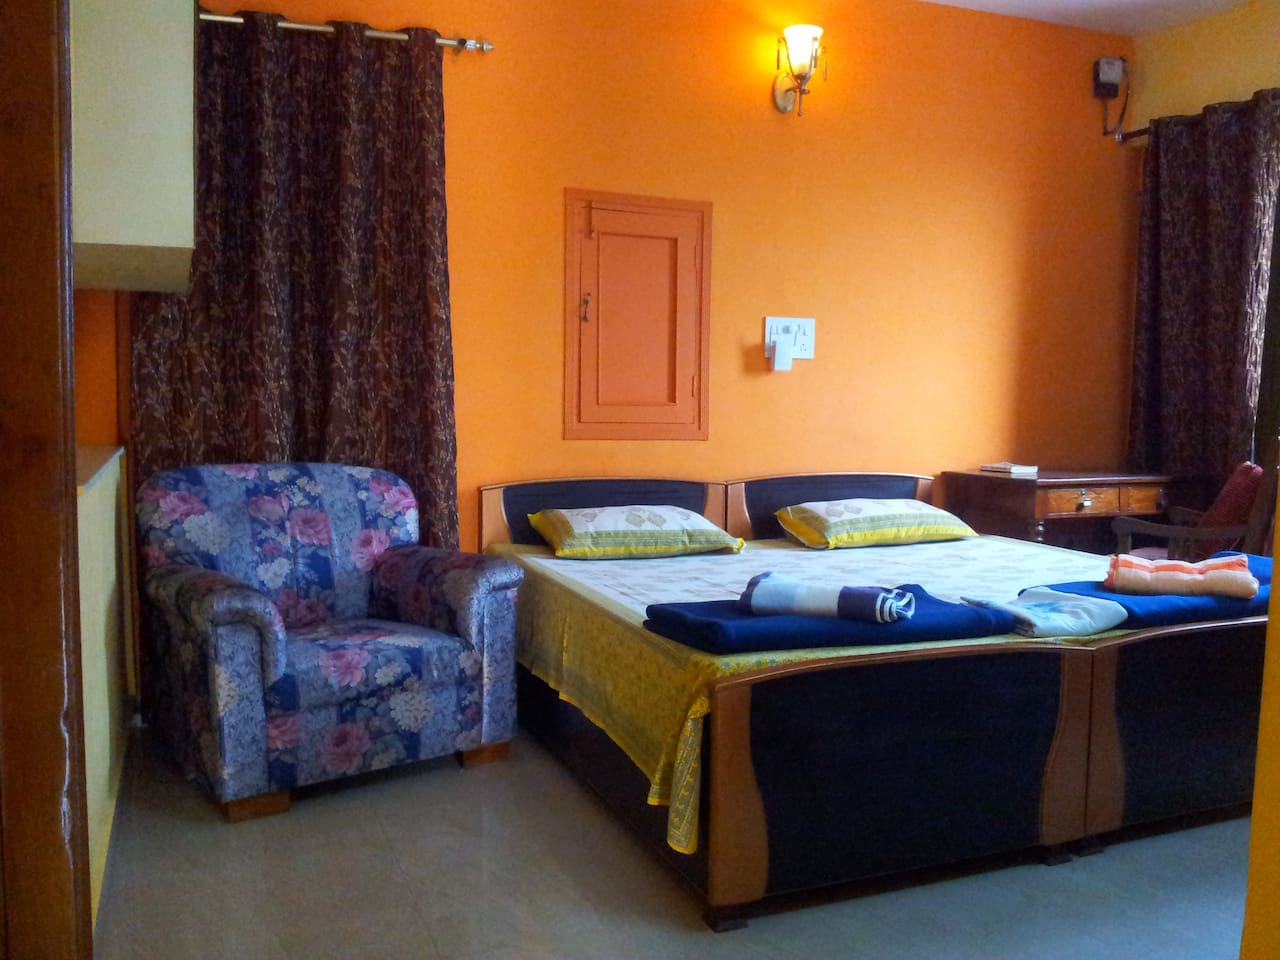 The double room is air-conditioned and comes with cable TV . Very comfortable and clean .